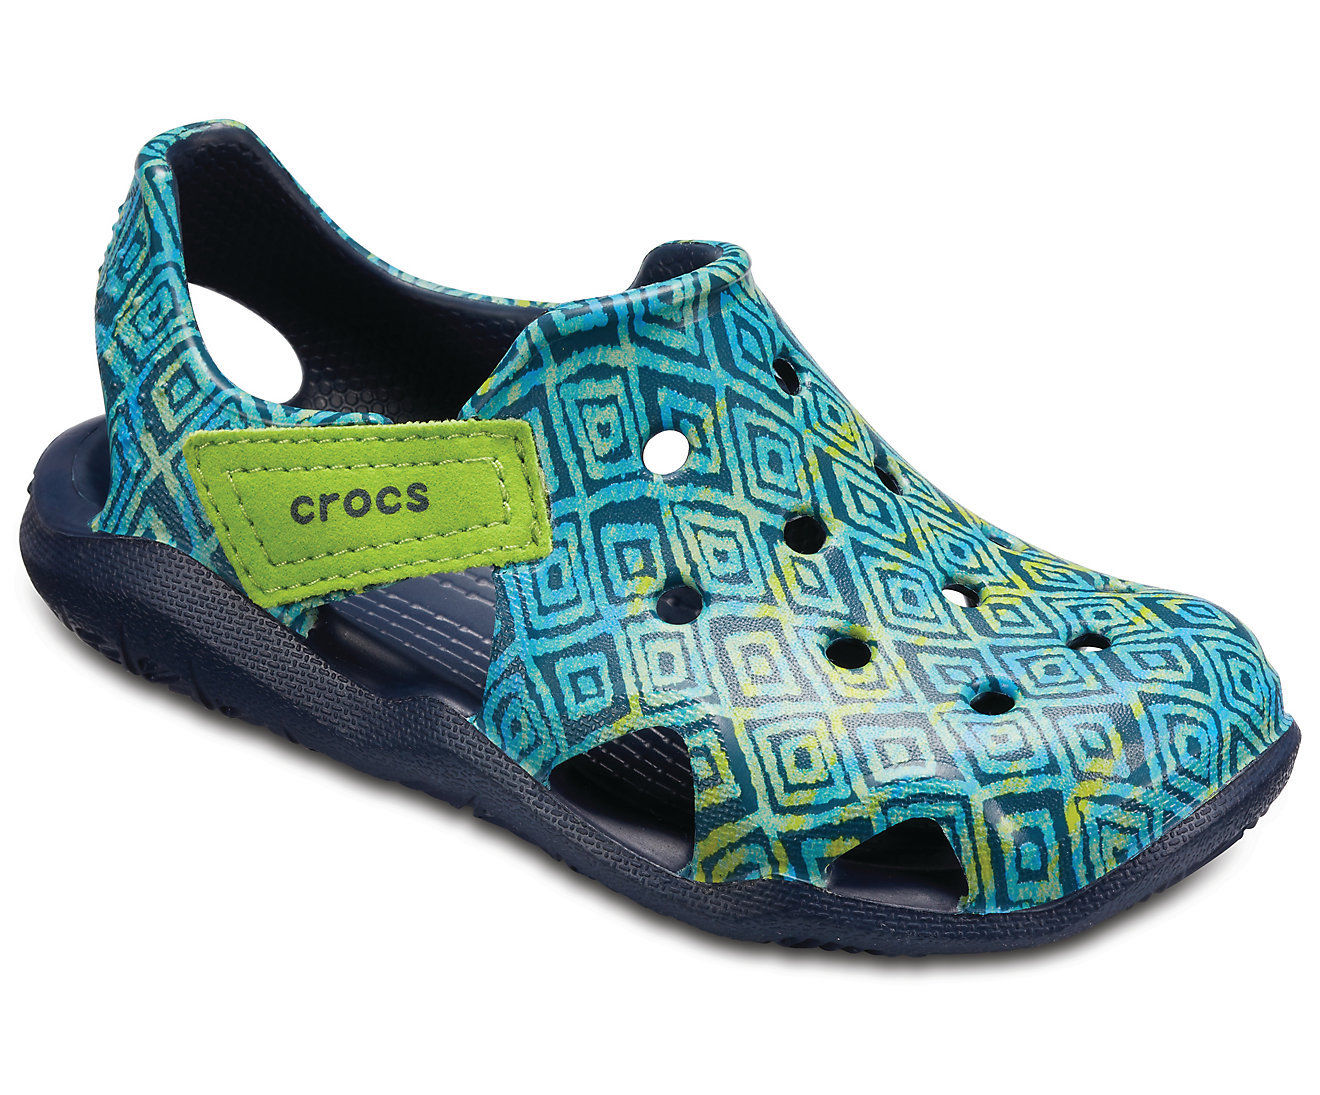 38b7645f7 Crocs Swiftwater Wave Graphic Kids Girls Casual Clog Shoes Pattern Nav –  The Shoe Centre